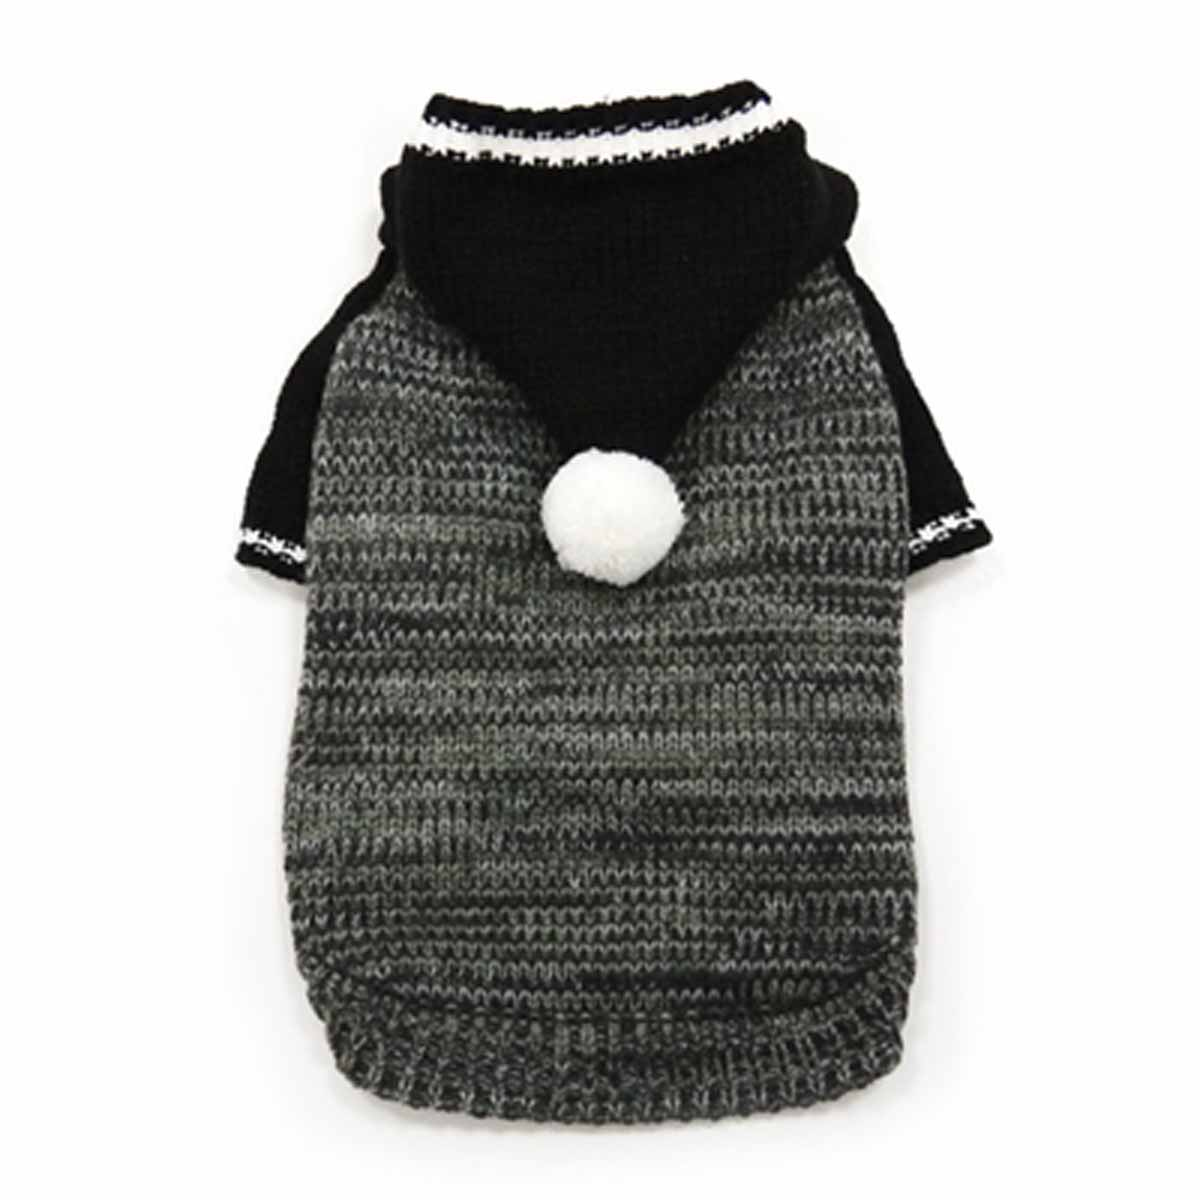 Contrast Hoodie Dog Sweater by Dogo - Black with Same Day Shipping ...